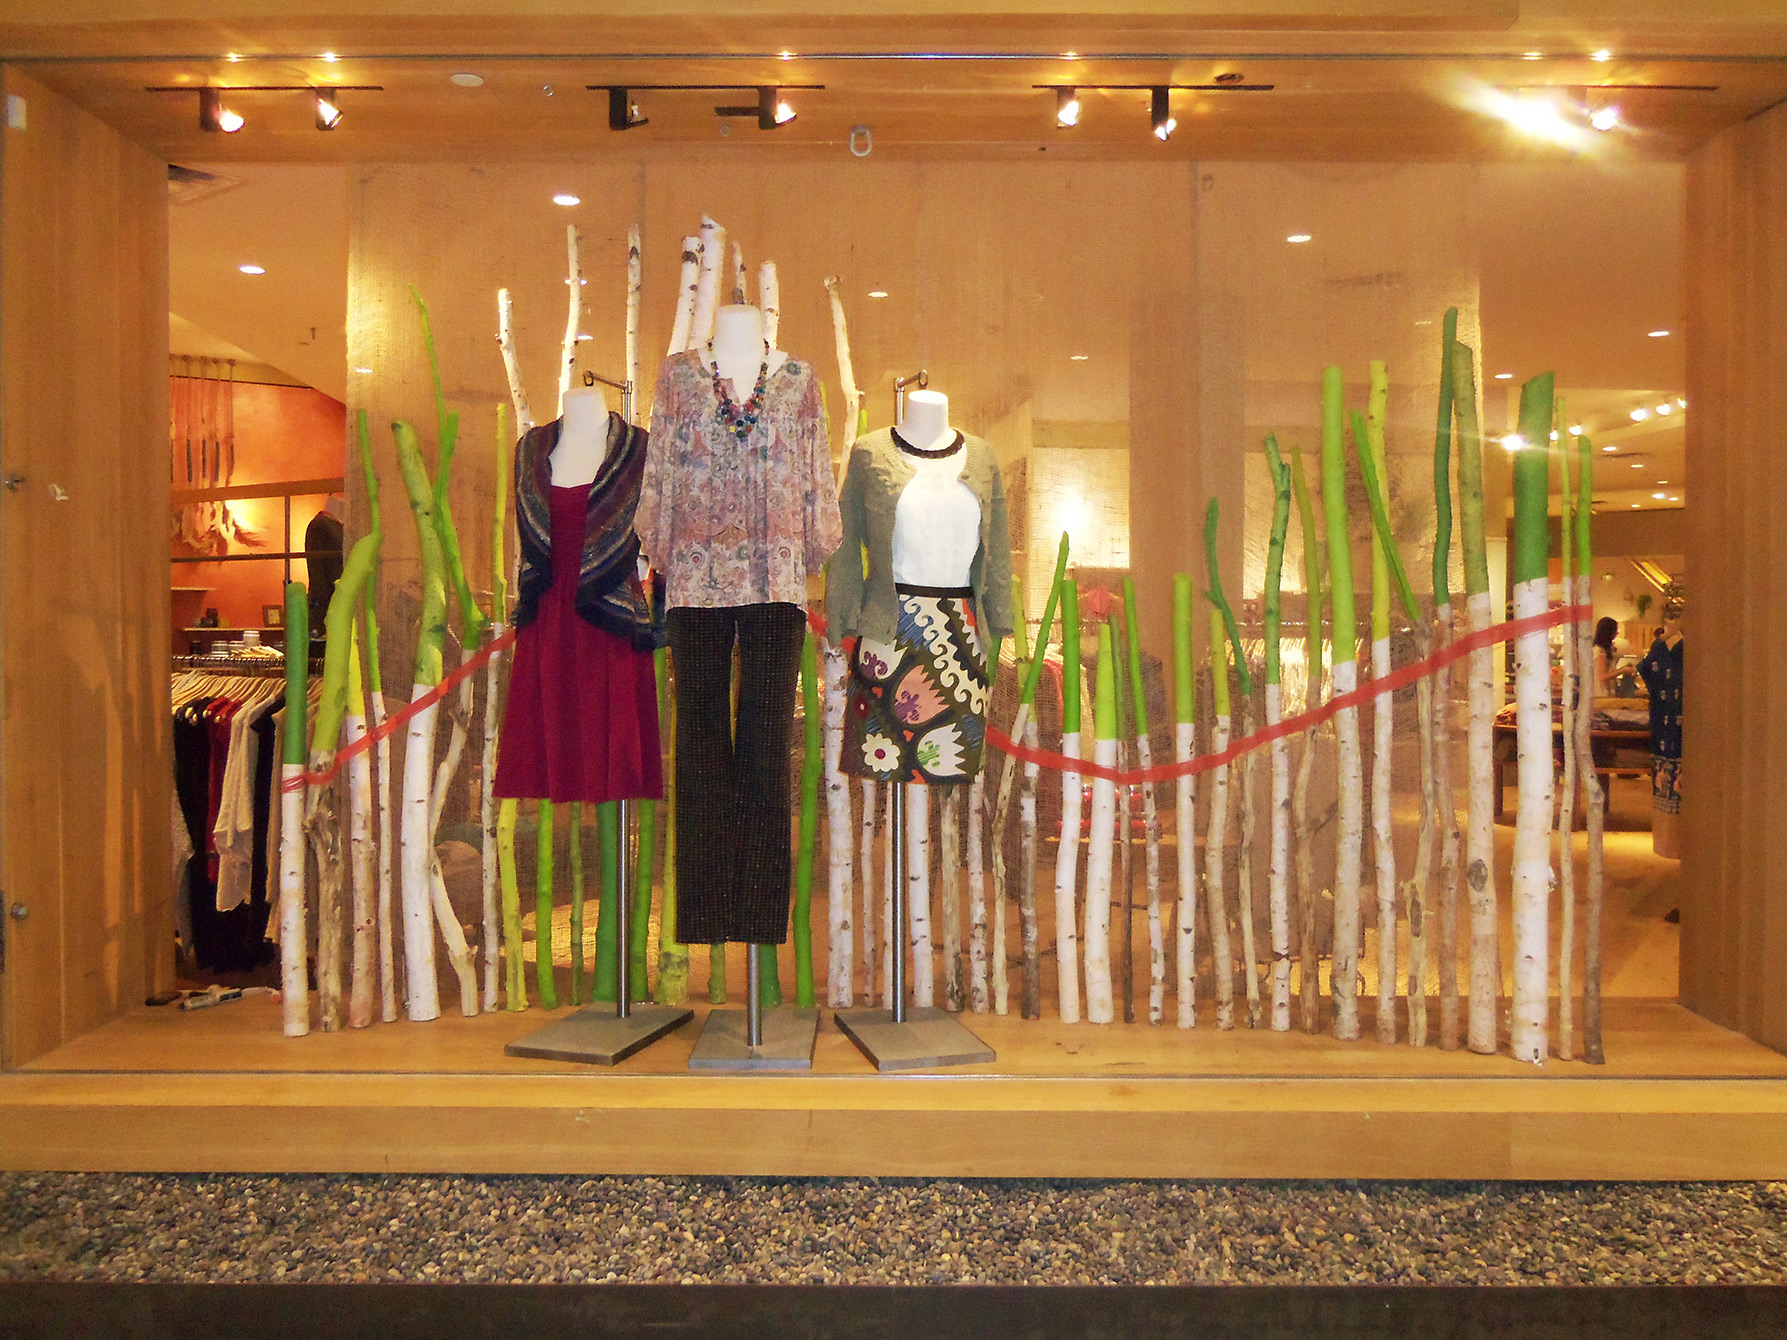 Anthropologie autumn window display is defined by a few trunks split in two colors, green and white, which could be the point of plants changing by the season.